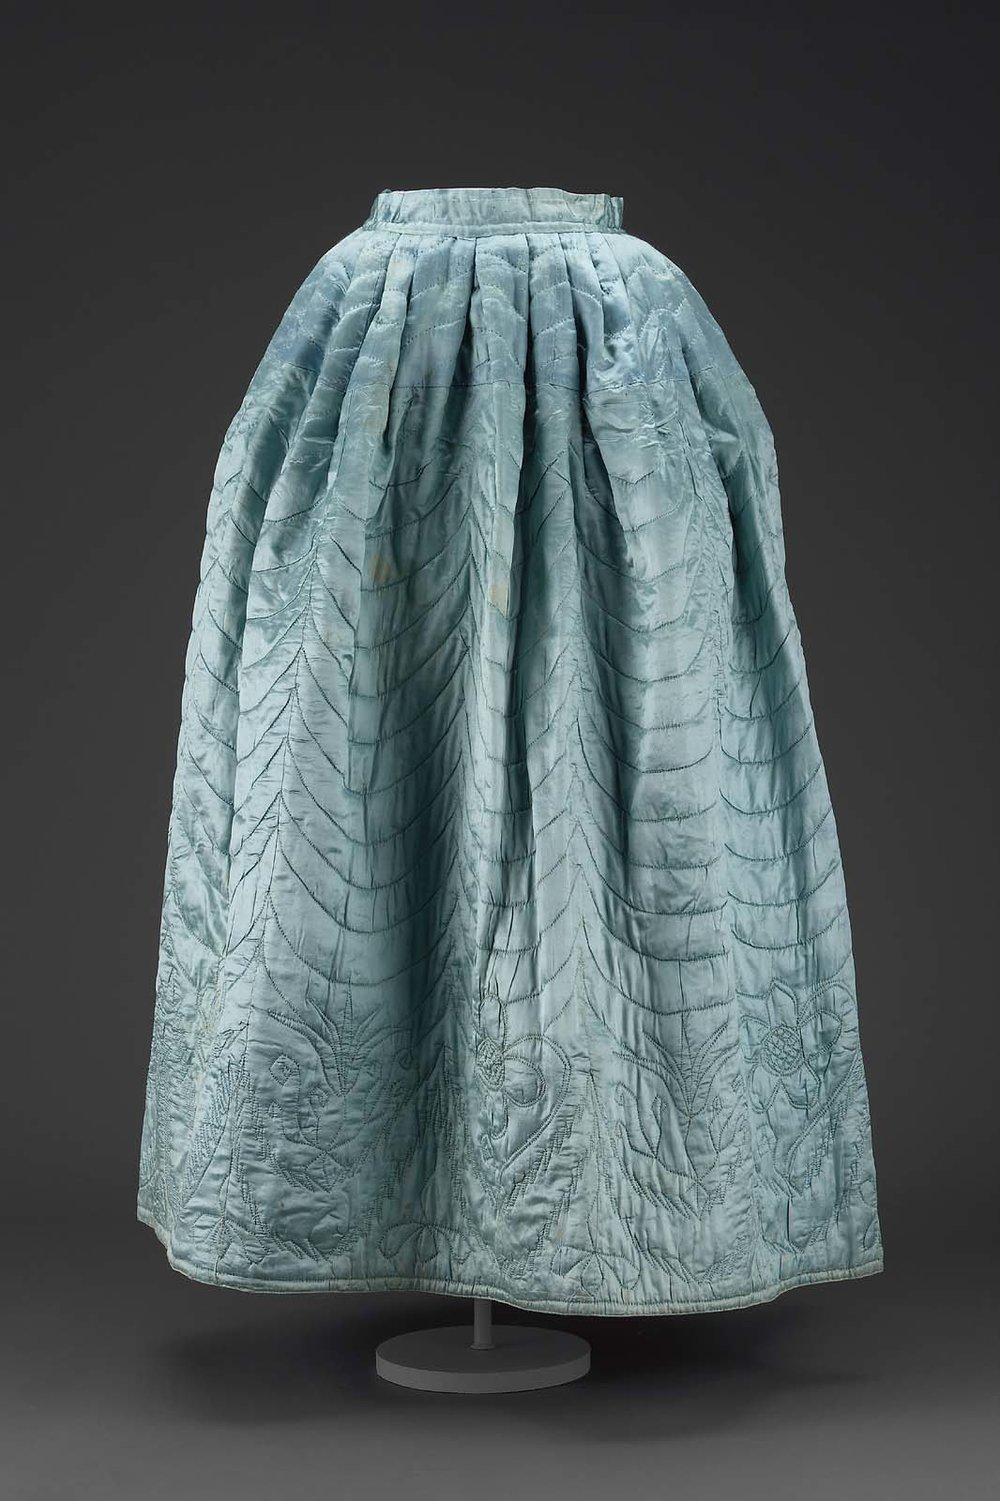 Eighteenth Century quilted petticoat.  http://www.mfa.org/collections/object/womans-petticoat-49973